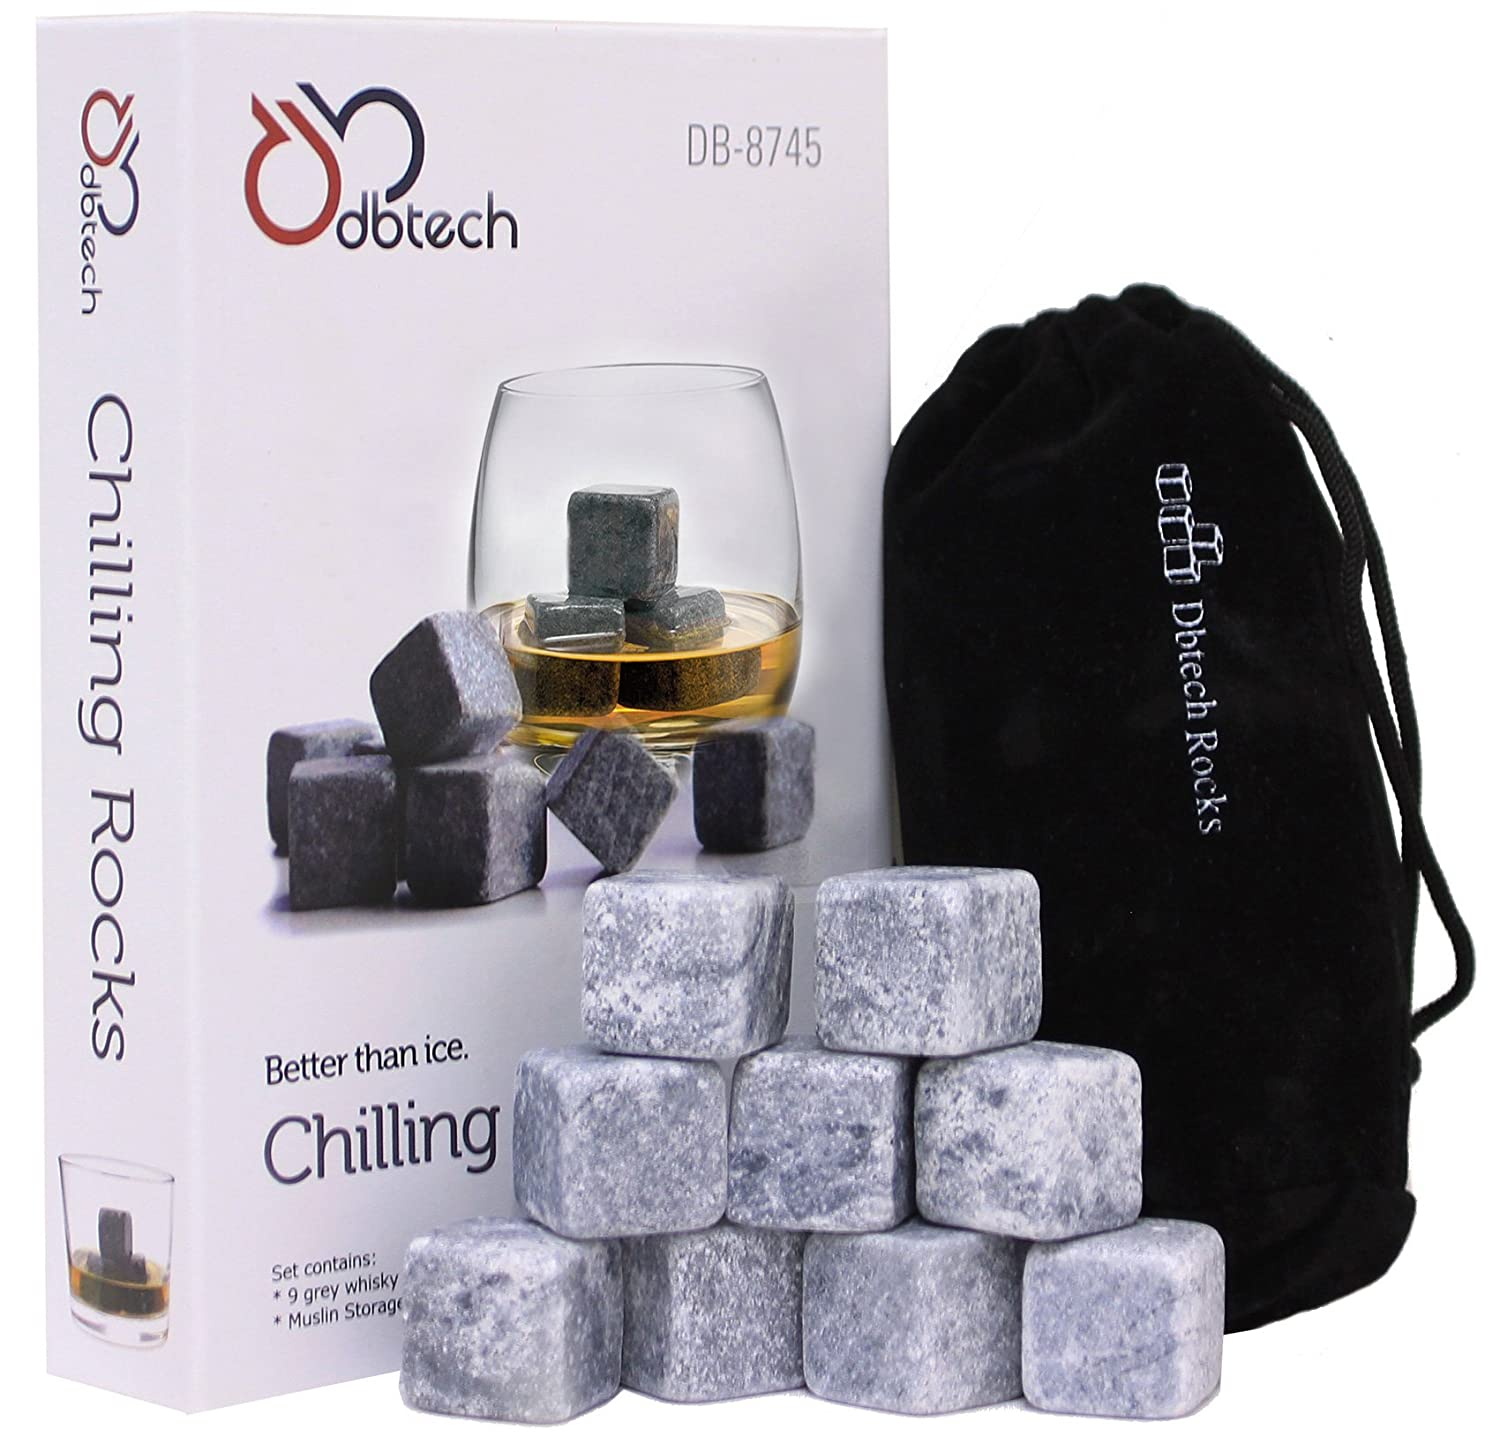 DB-Tech Whisky Chilling Rocks Gift Set - Set of 9 Grey Rocks With A Muslin Pouch - Chill Your Whiskey with these rocks Without Dilution DBTech DB-8745